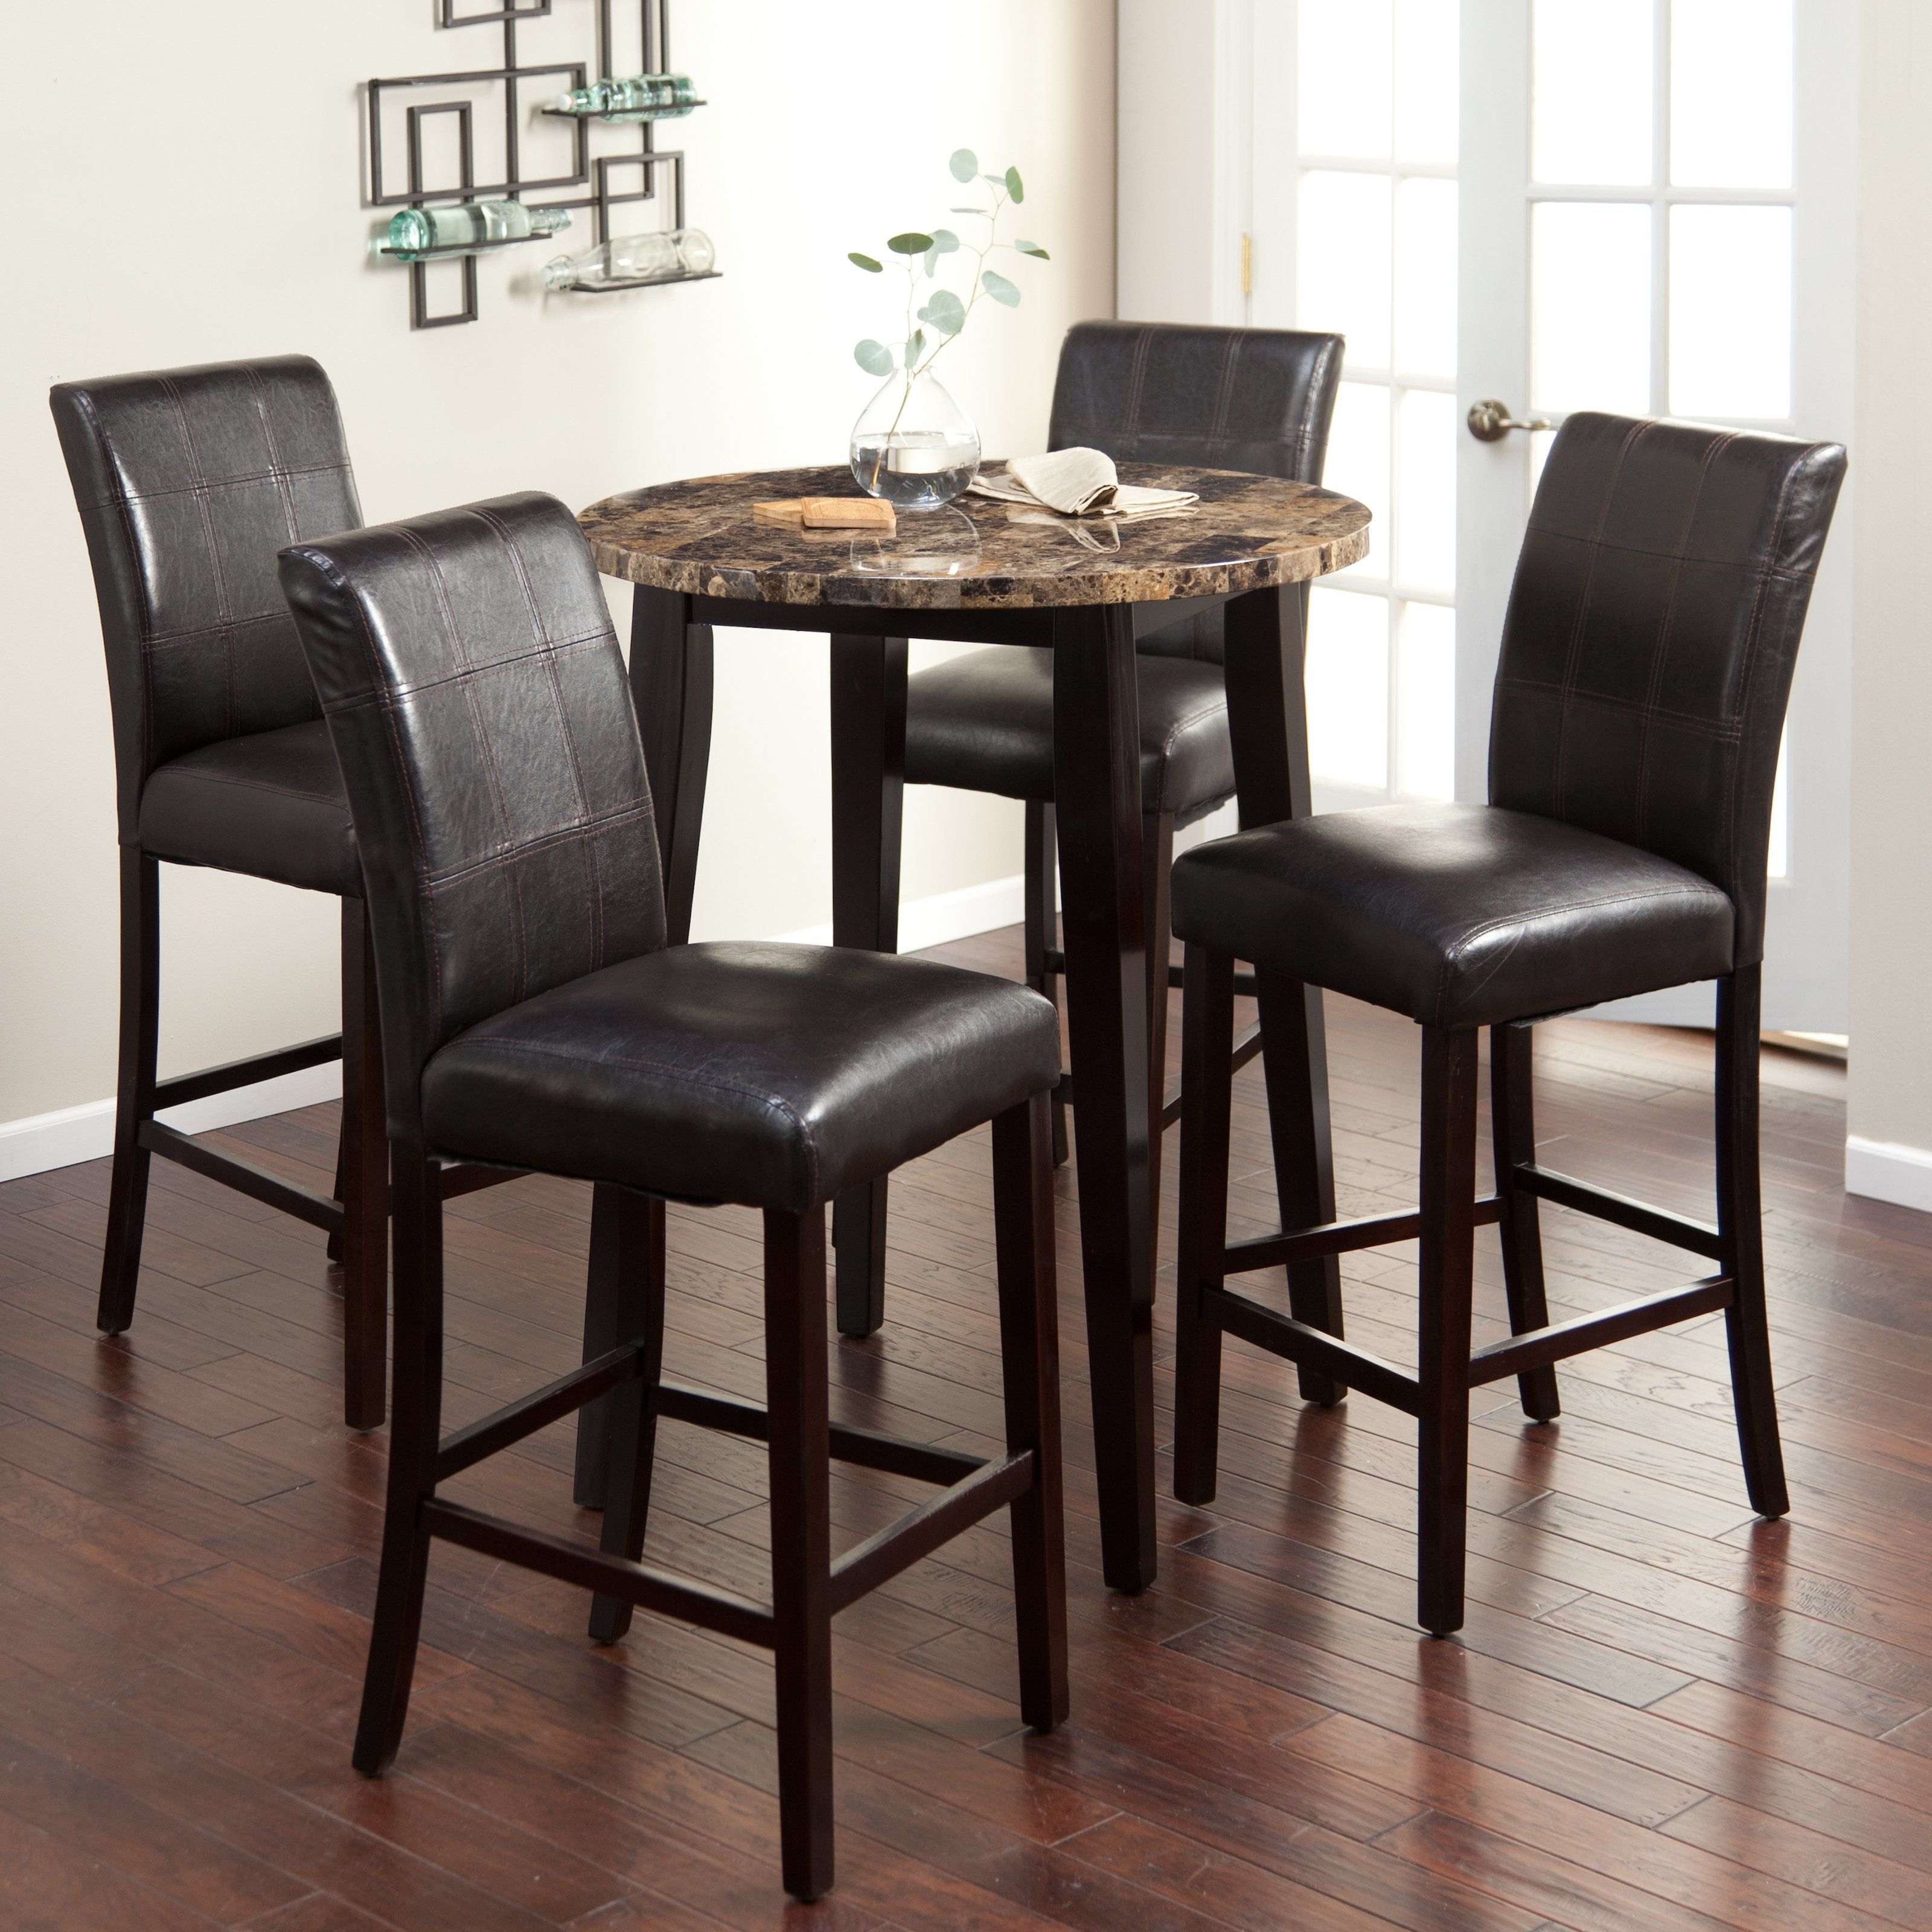 How To Choose The Right Pub Table Sets Pub Table Chairs Pub